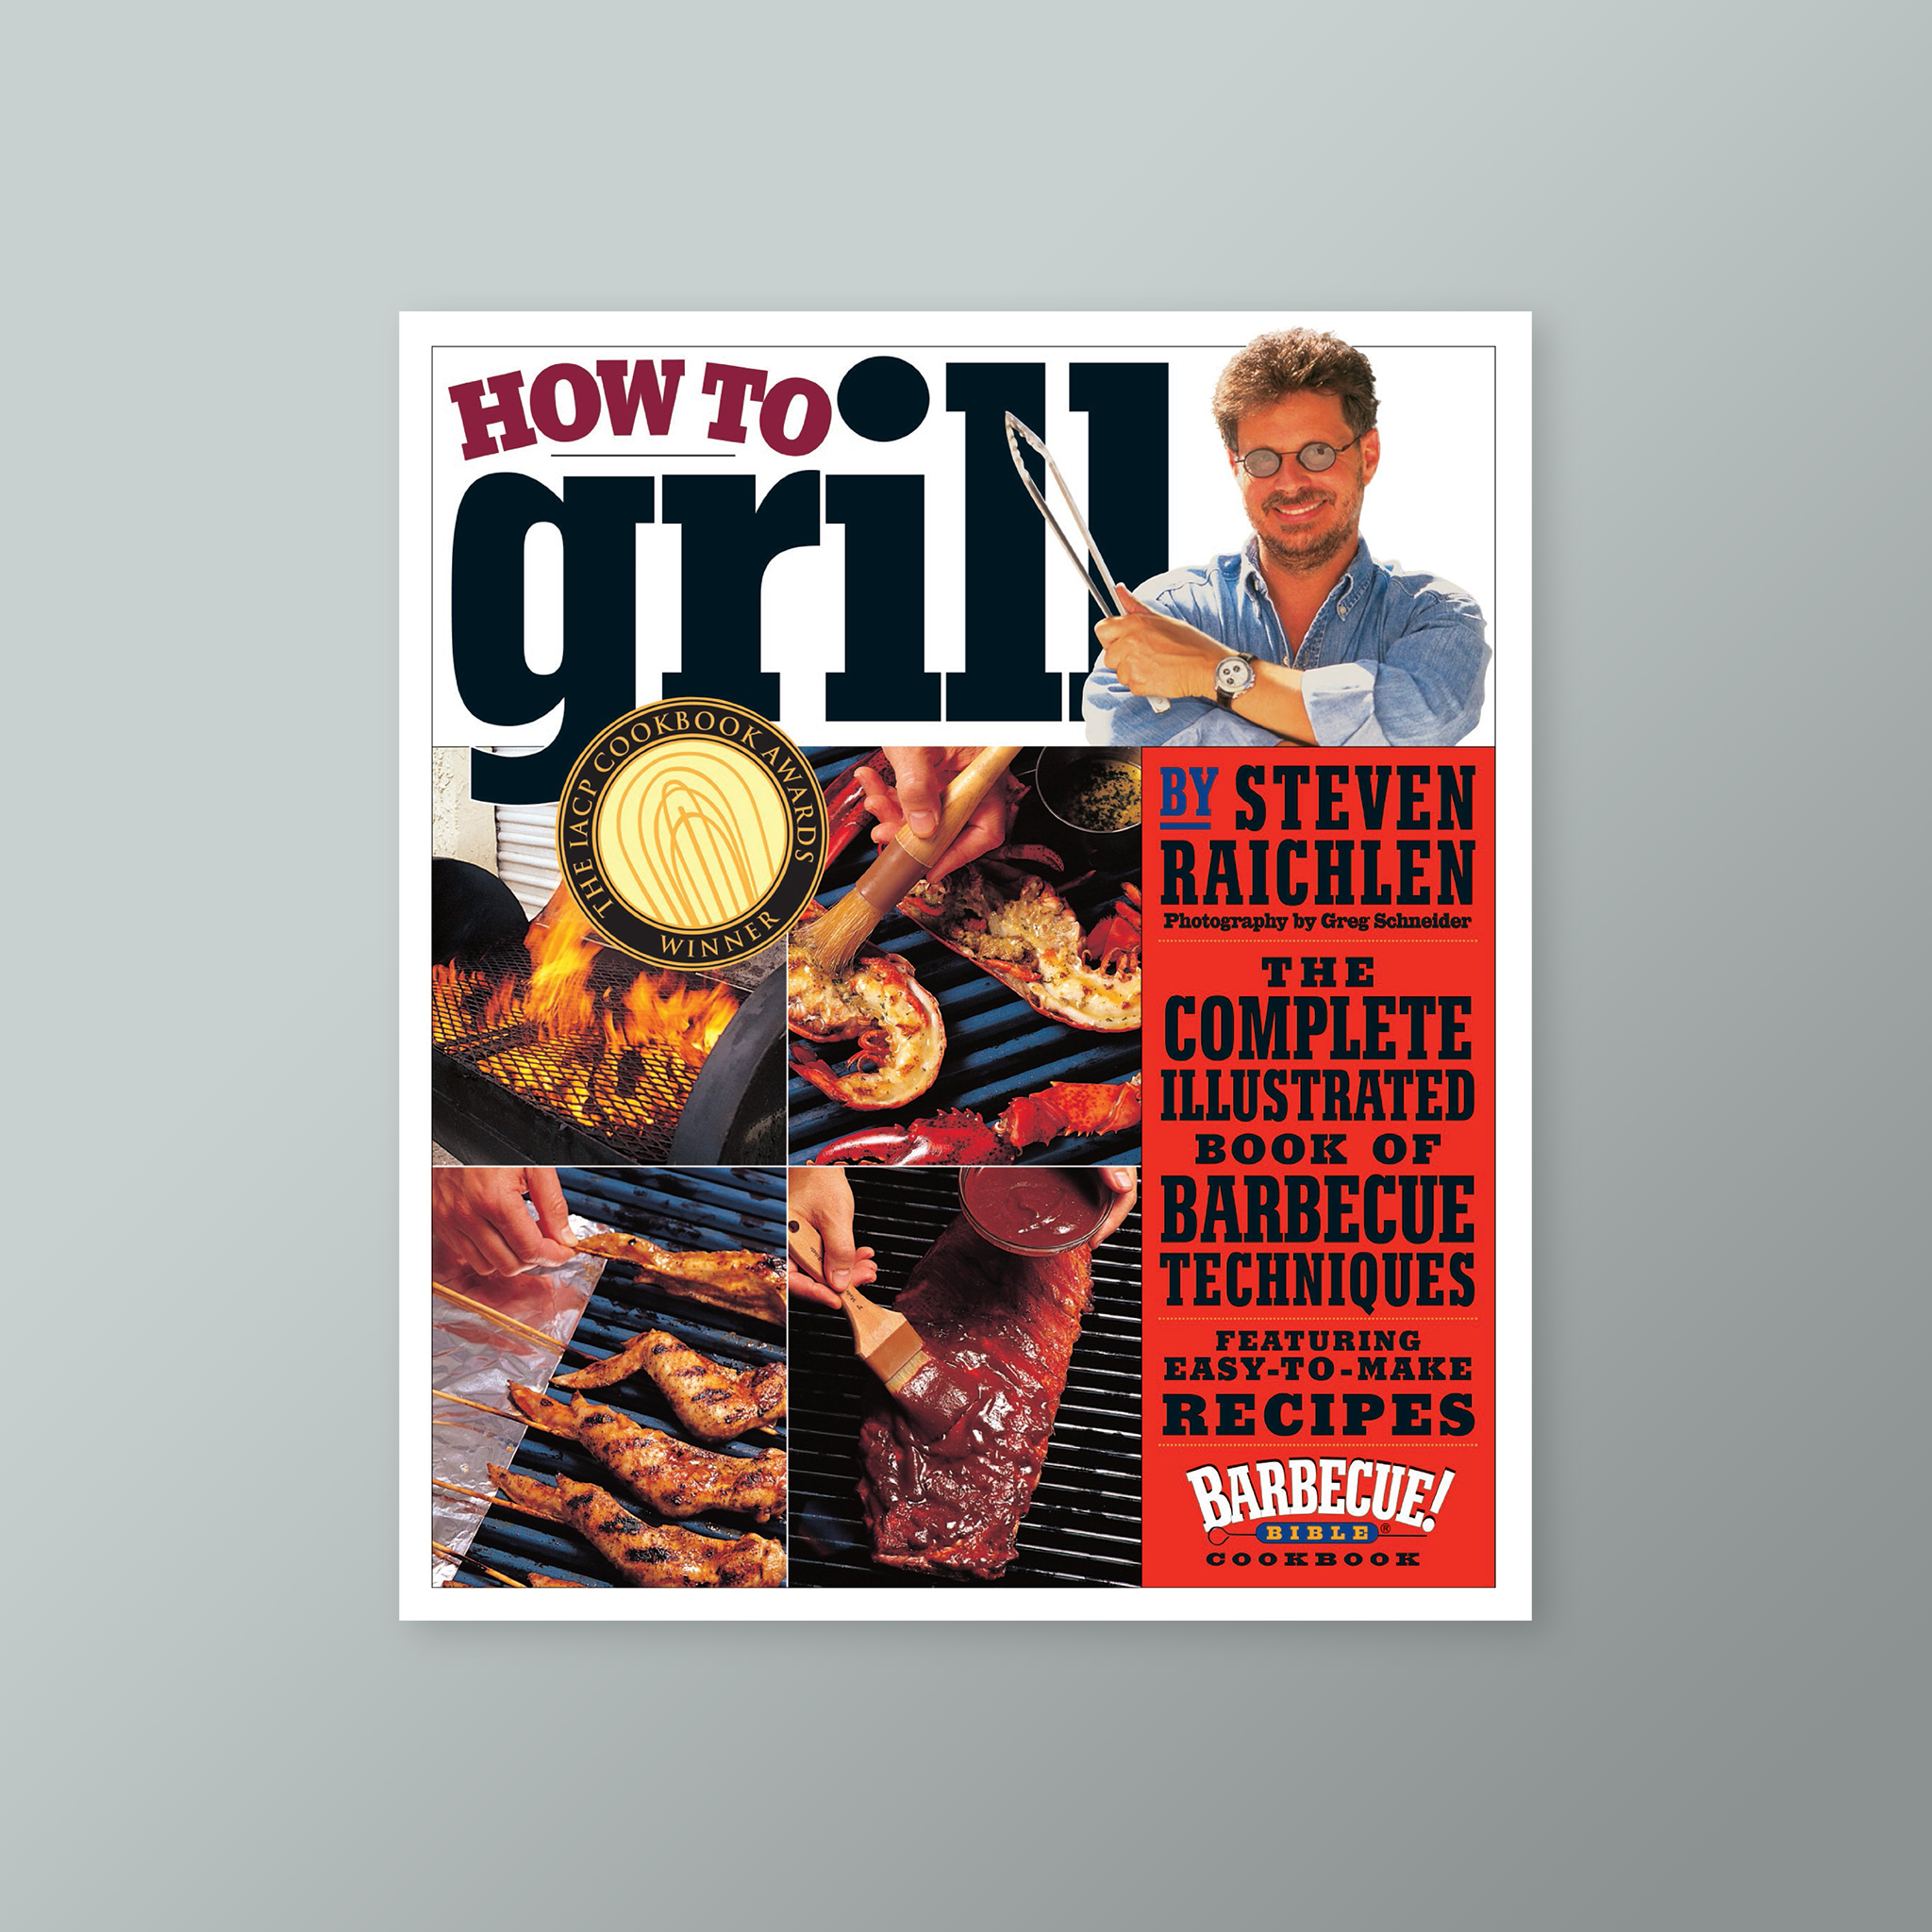 How to Grill is more of Technique book, step by step how to cook 150 essential dishes on the grill. 1000 step-by-step photographs